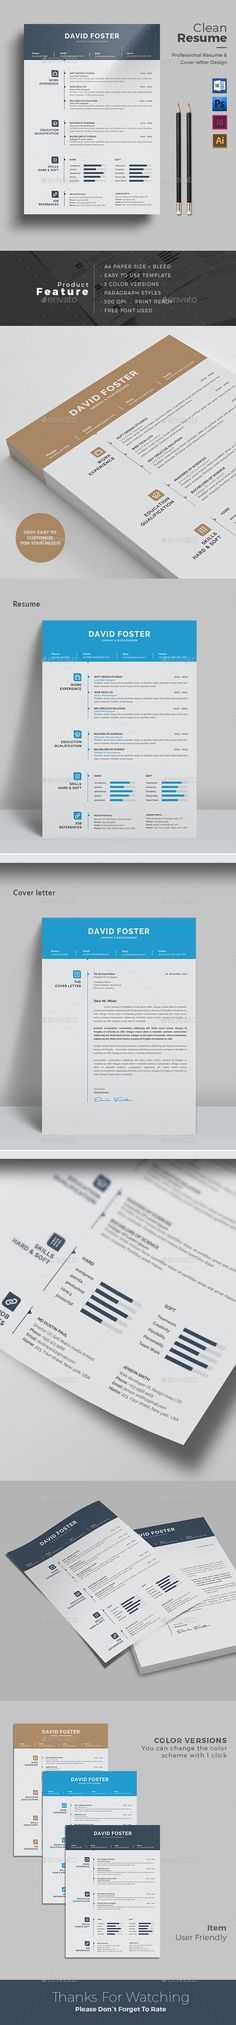 Resume - Resumes Stationery Resume Templates Microsoft Word - how to make resume on word